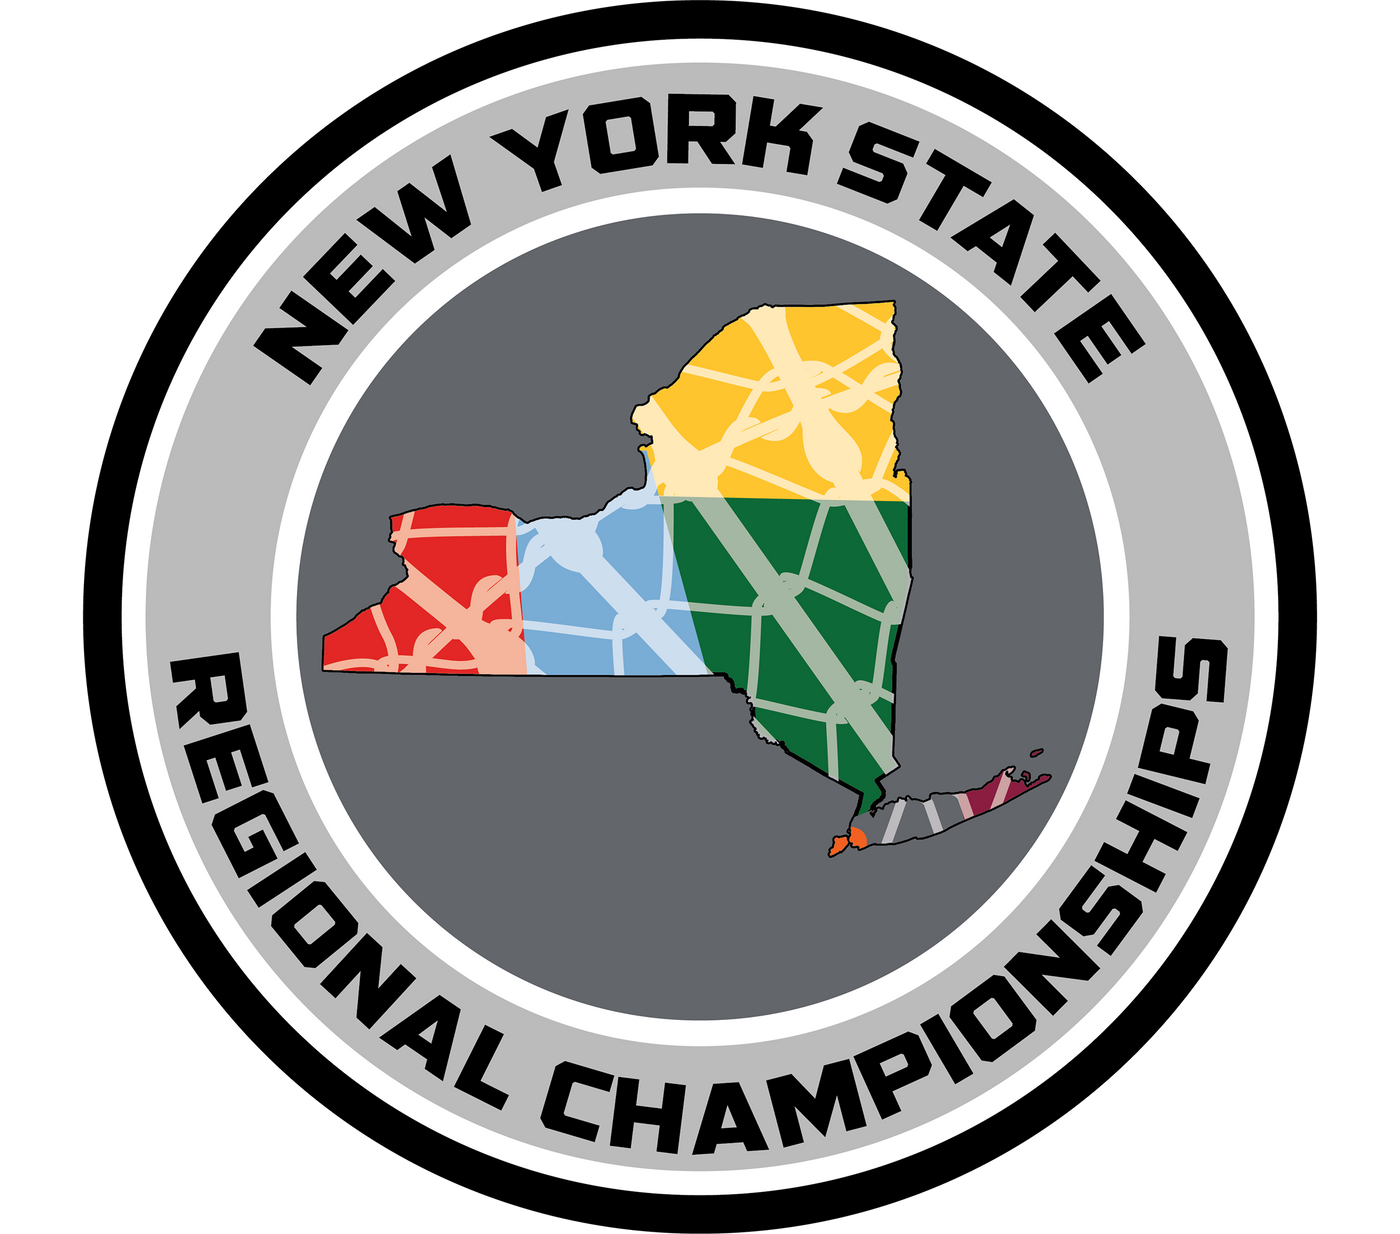 2019 New York State Lacrosse Regional Championships